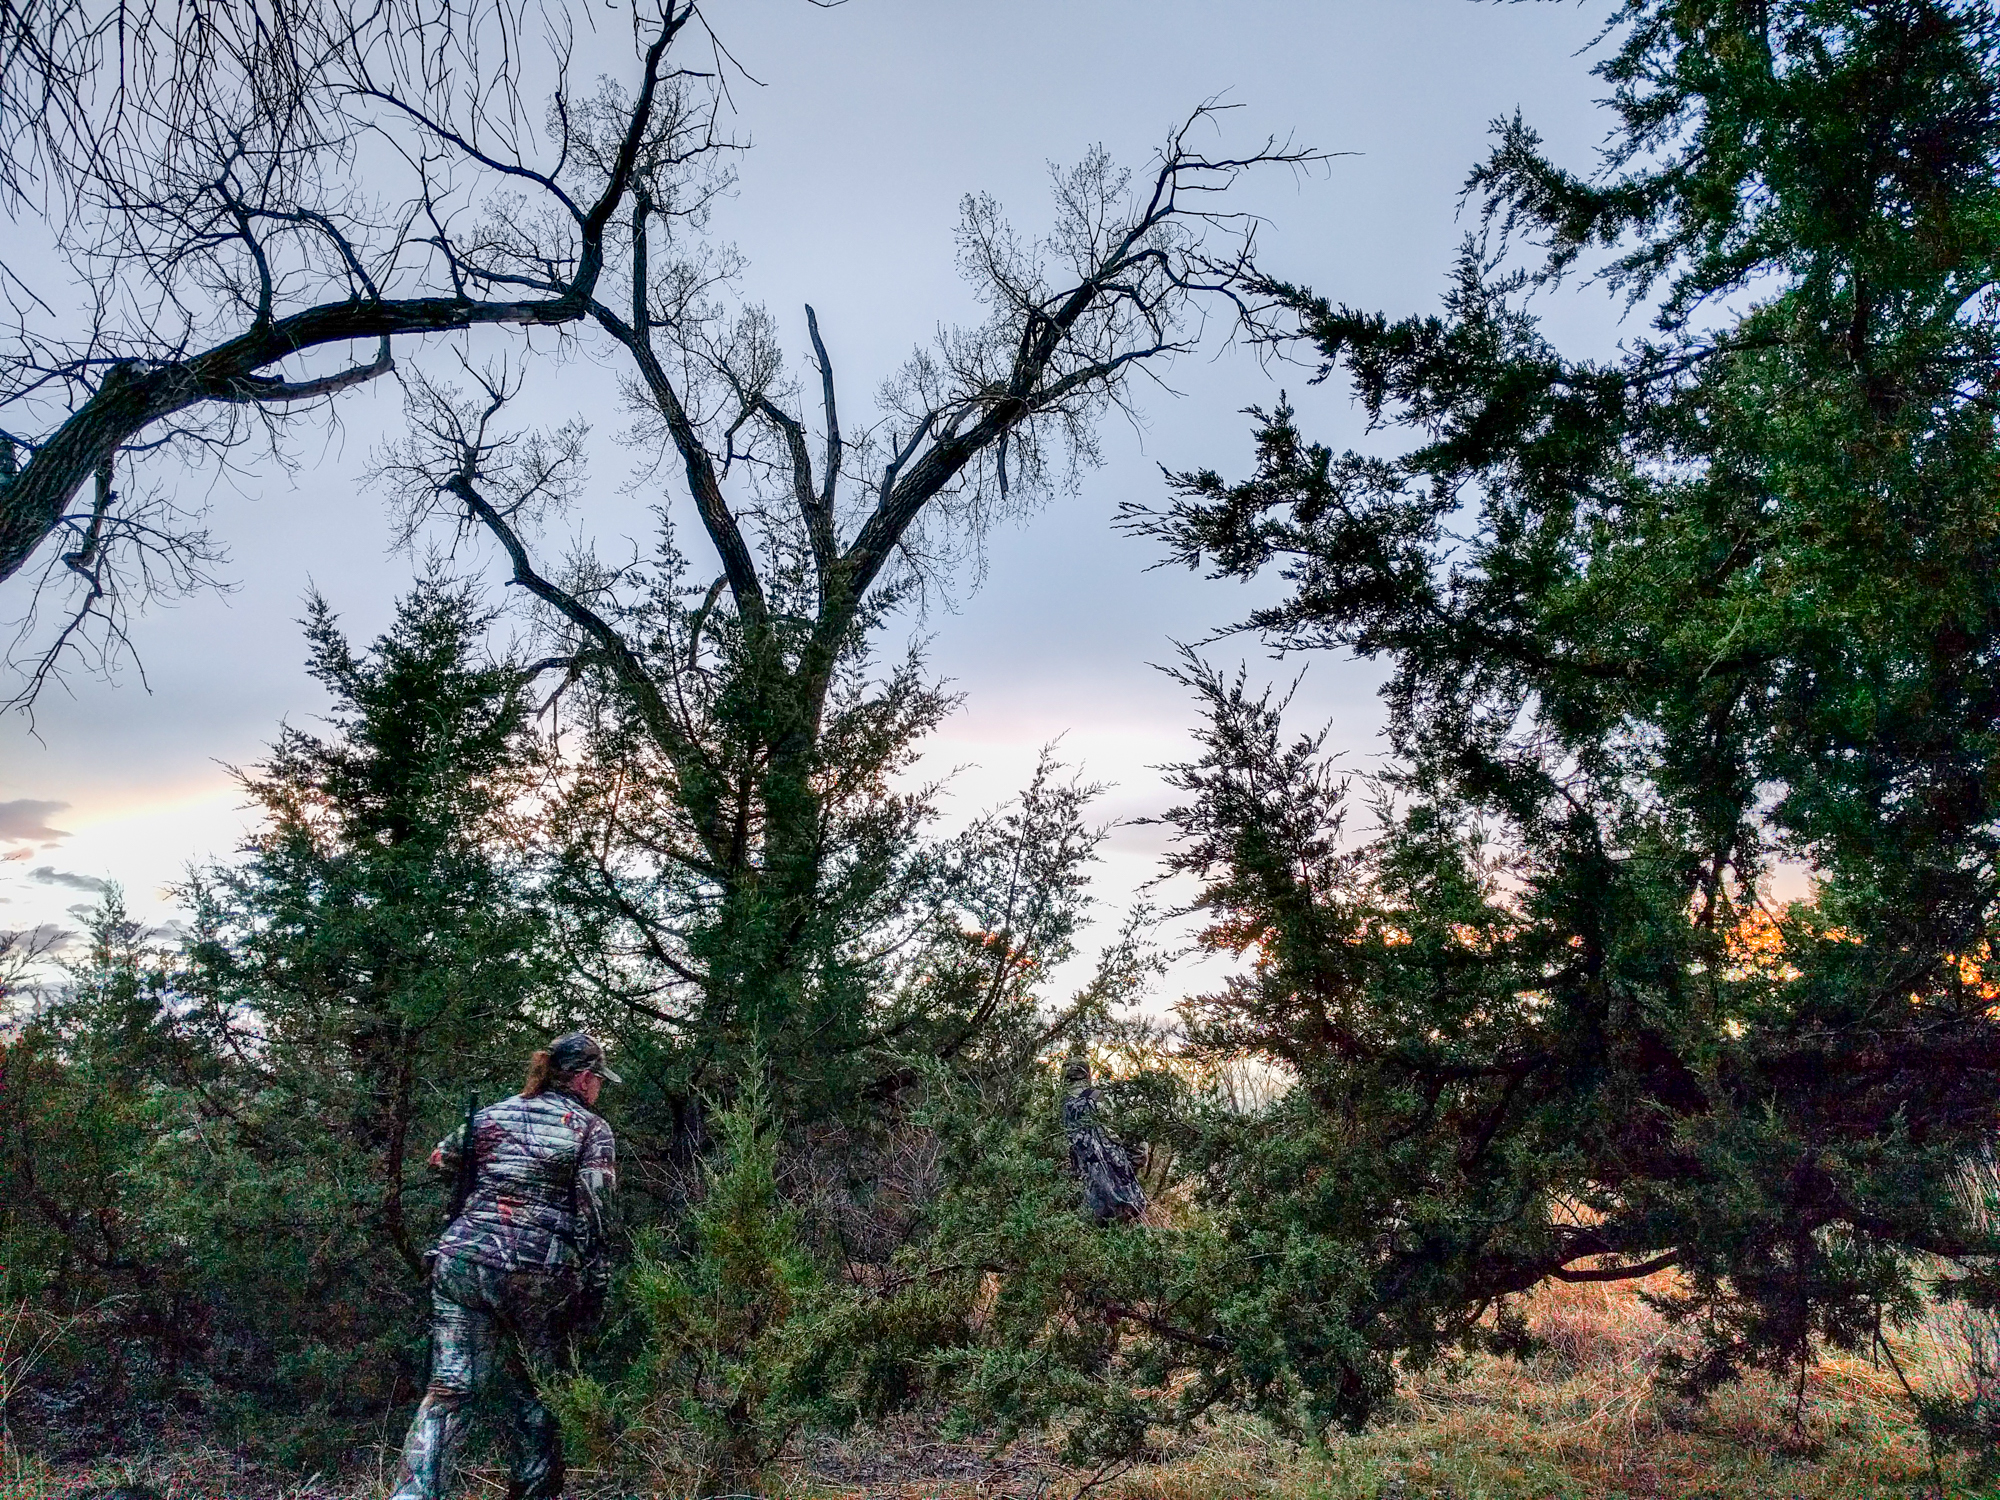 TURKEY HUNTING: THE EIGHT ESSENTIALS   As wild turkey numbers have rebounded over the last quarter-century—thanks in large parts to the efforts of hunters—more and more people take to the woods each spring in search of a big gobbler. Pursuing turkeys is exciting, and the struggle of bringing a big bird strutting to the call is one of the most rewarding hunts you can experience.